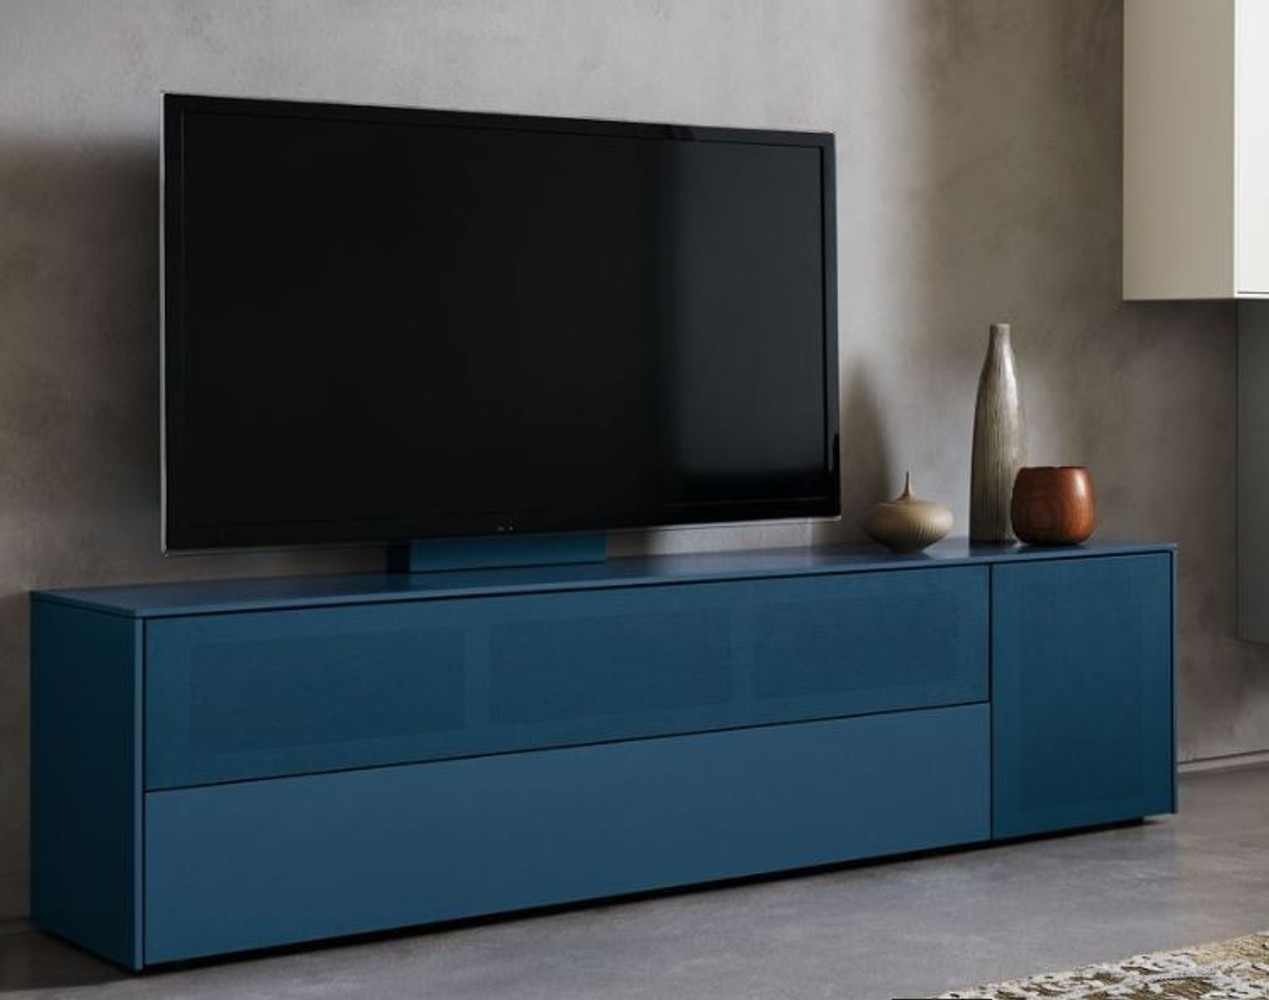 wk wohnen tv medienboard modell wk 419 intono werkshagen. Black Bedroom Furniture Sets. Home Design Ideas